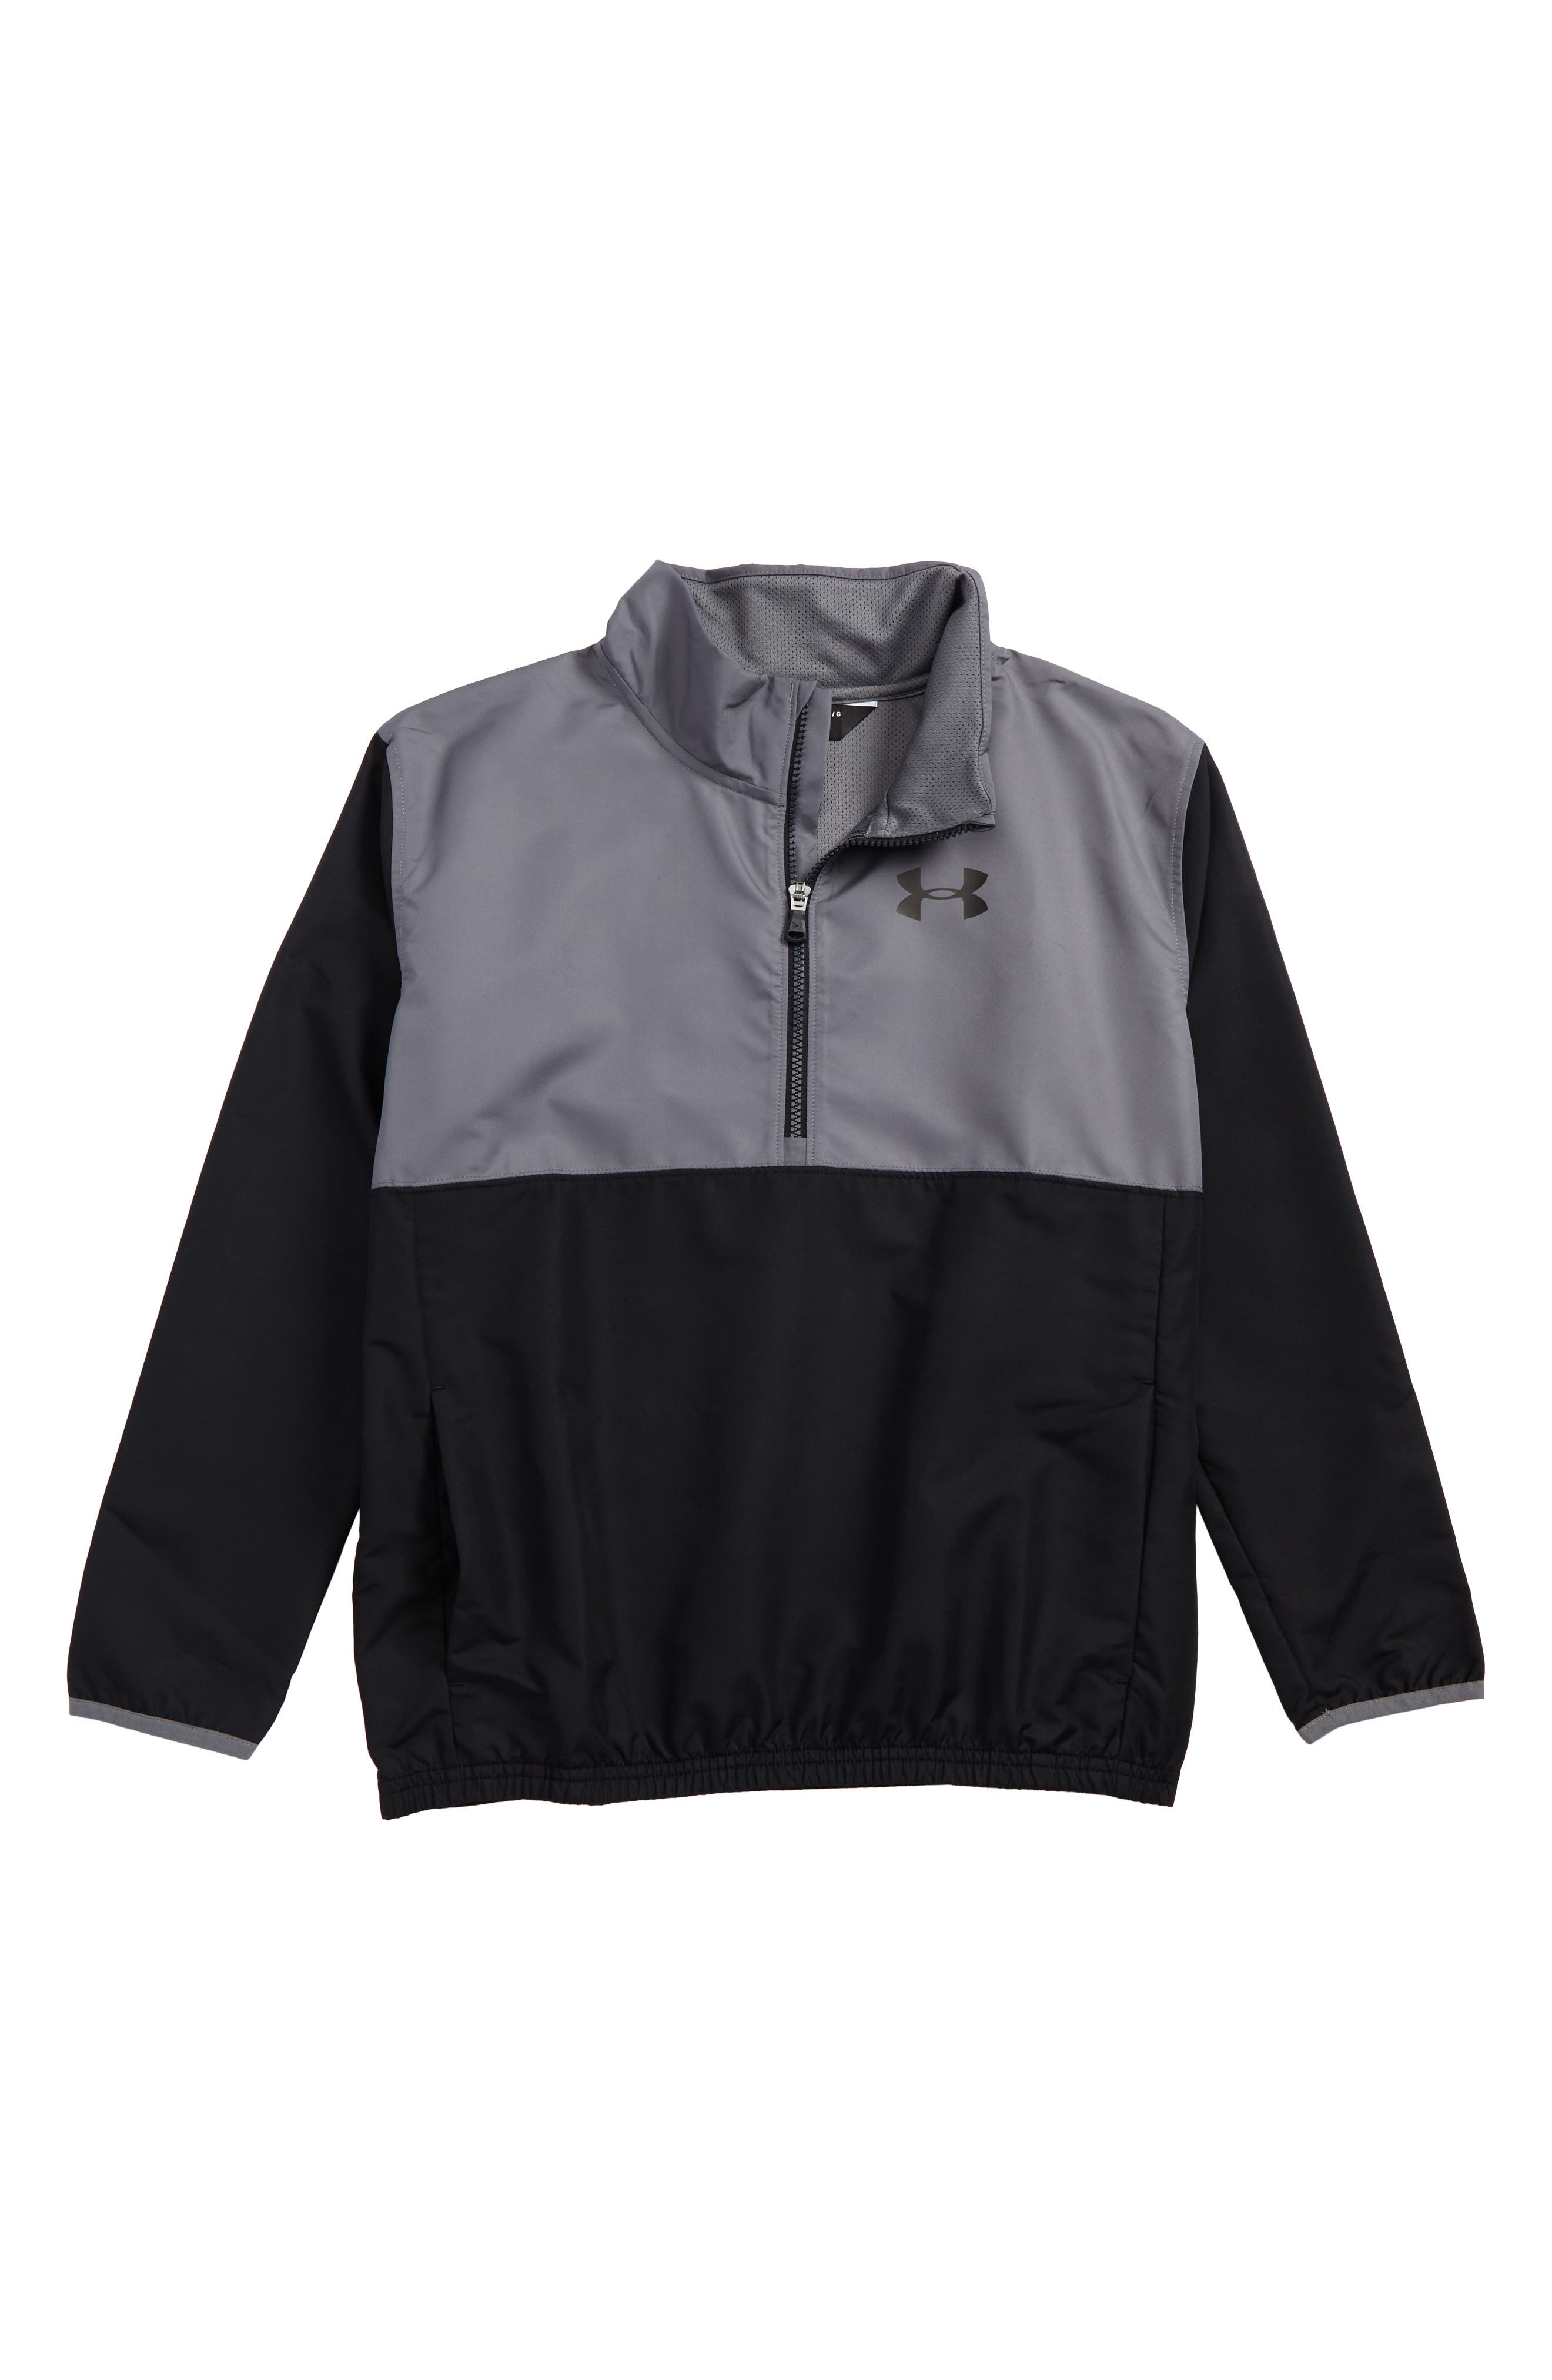 Train to Game Half Zip Pullover,                         Main,                         color, 001